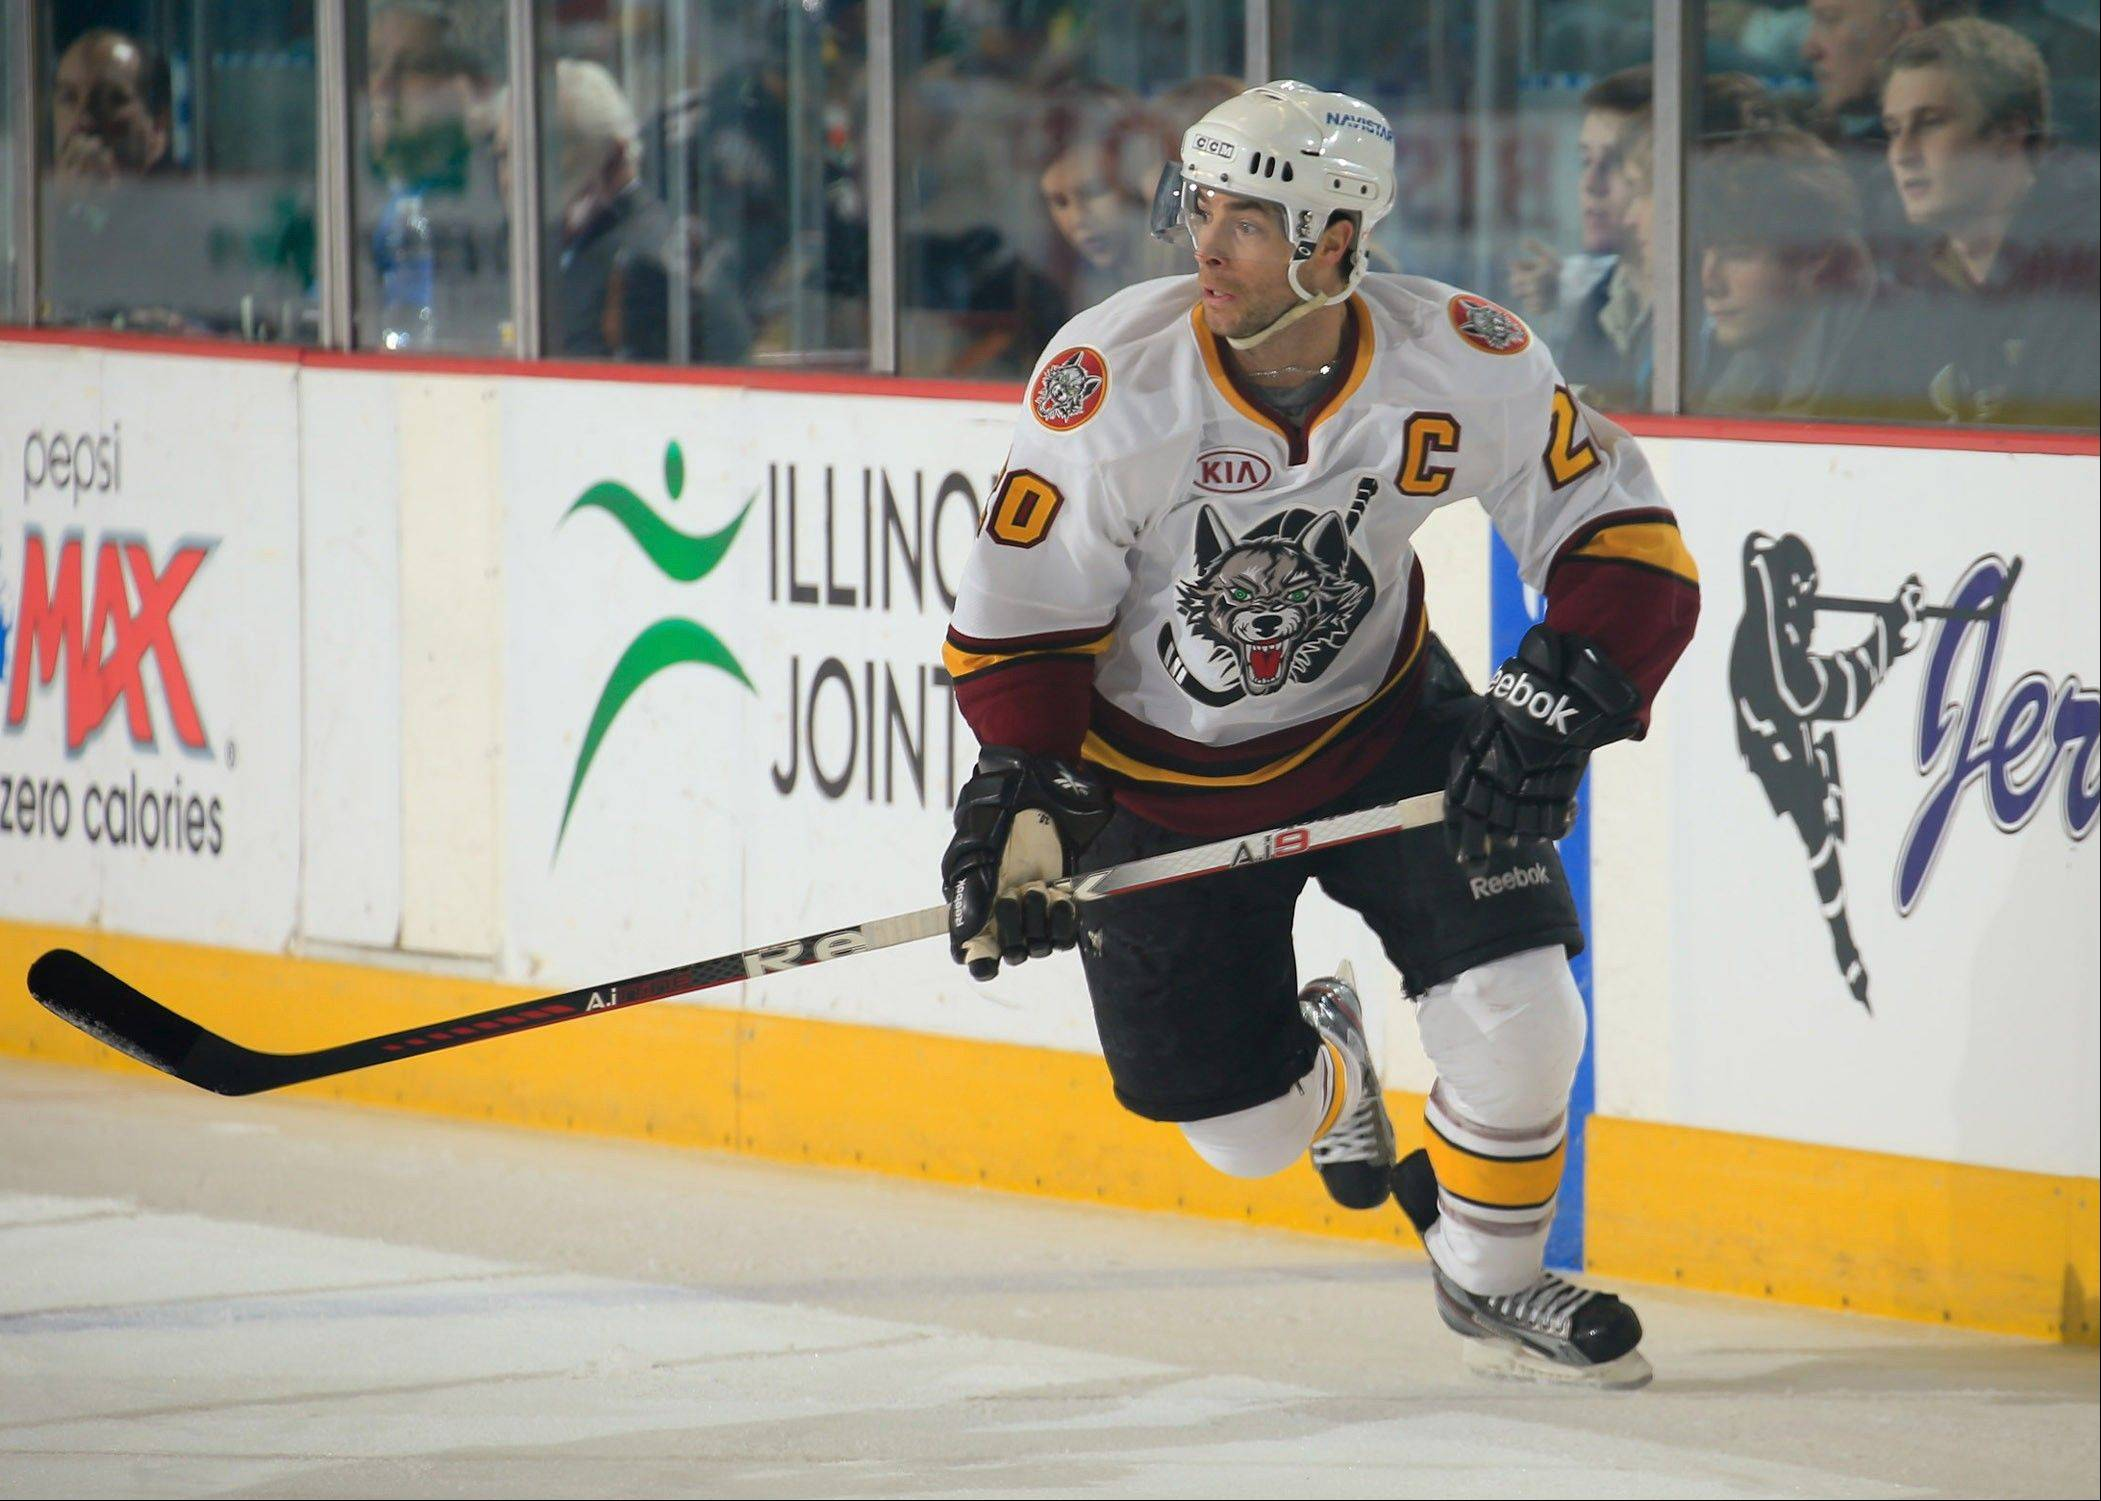 Wolves captain Darren Haydar is moving up the alltime scoring lists in the AHL and Chicago.